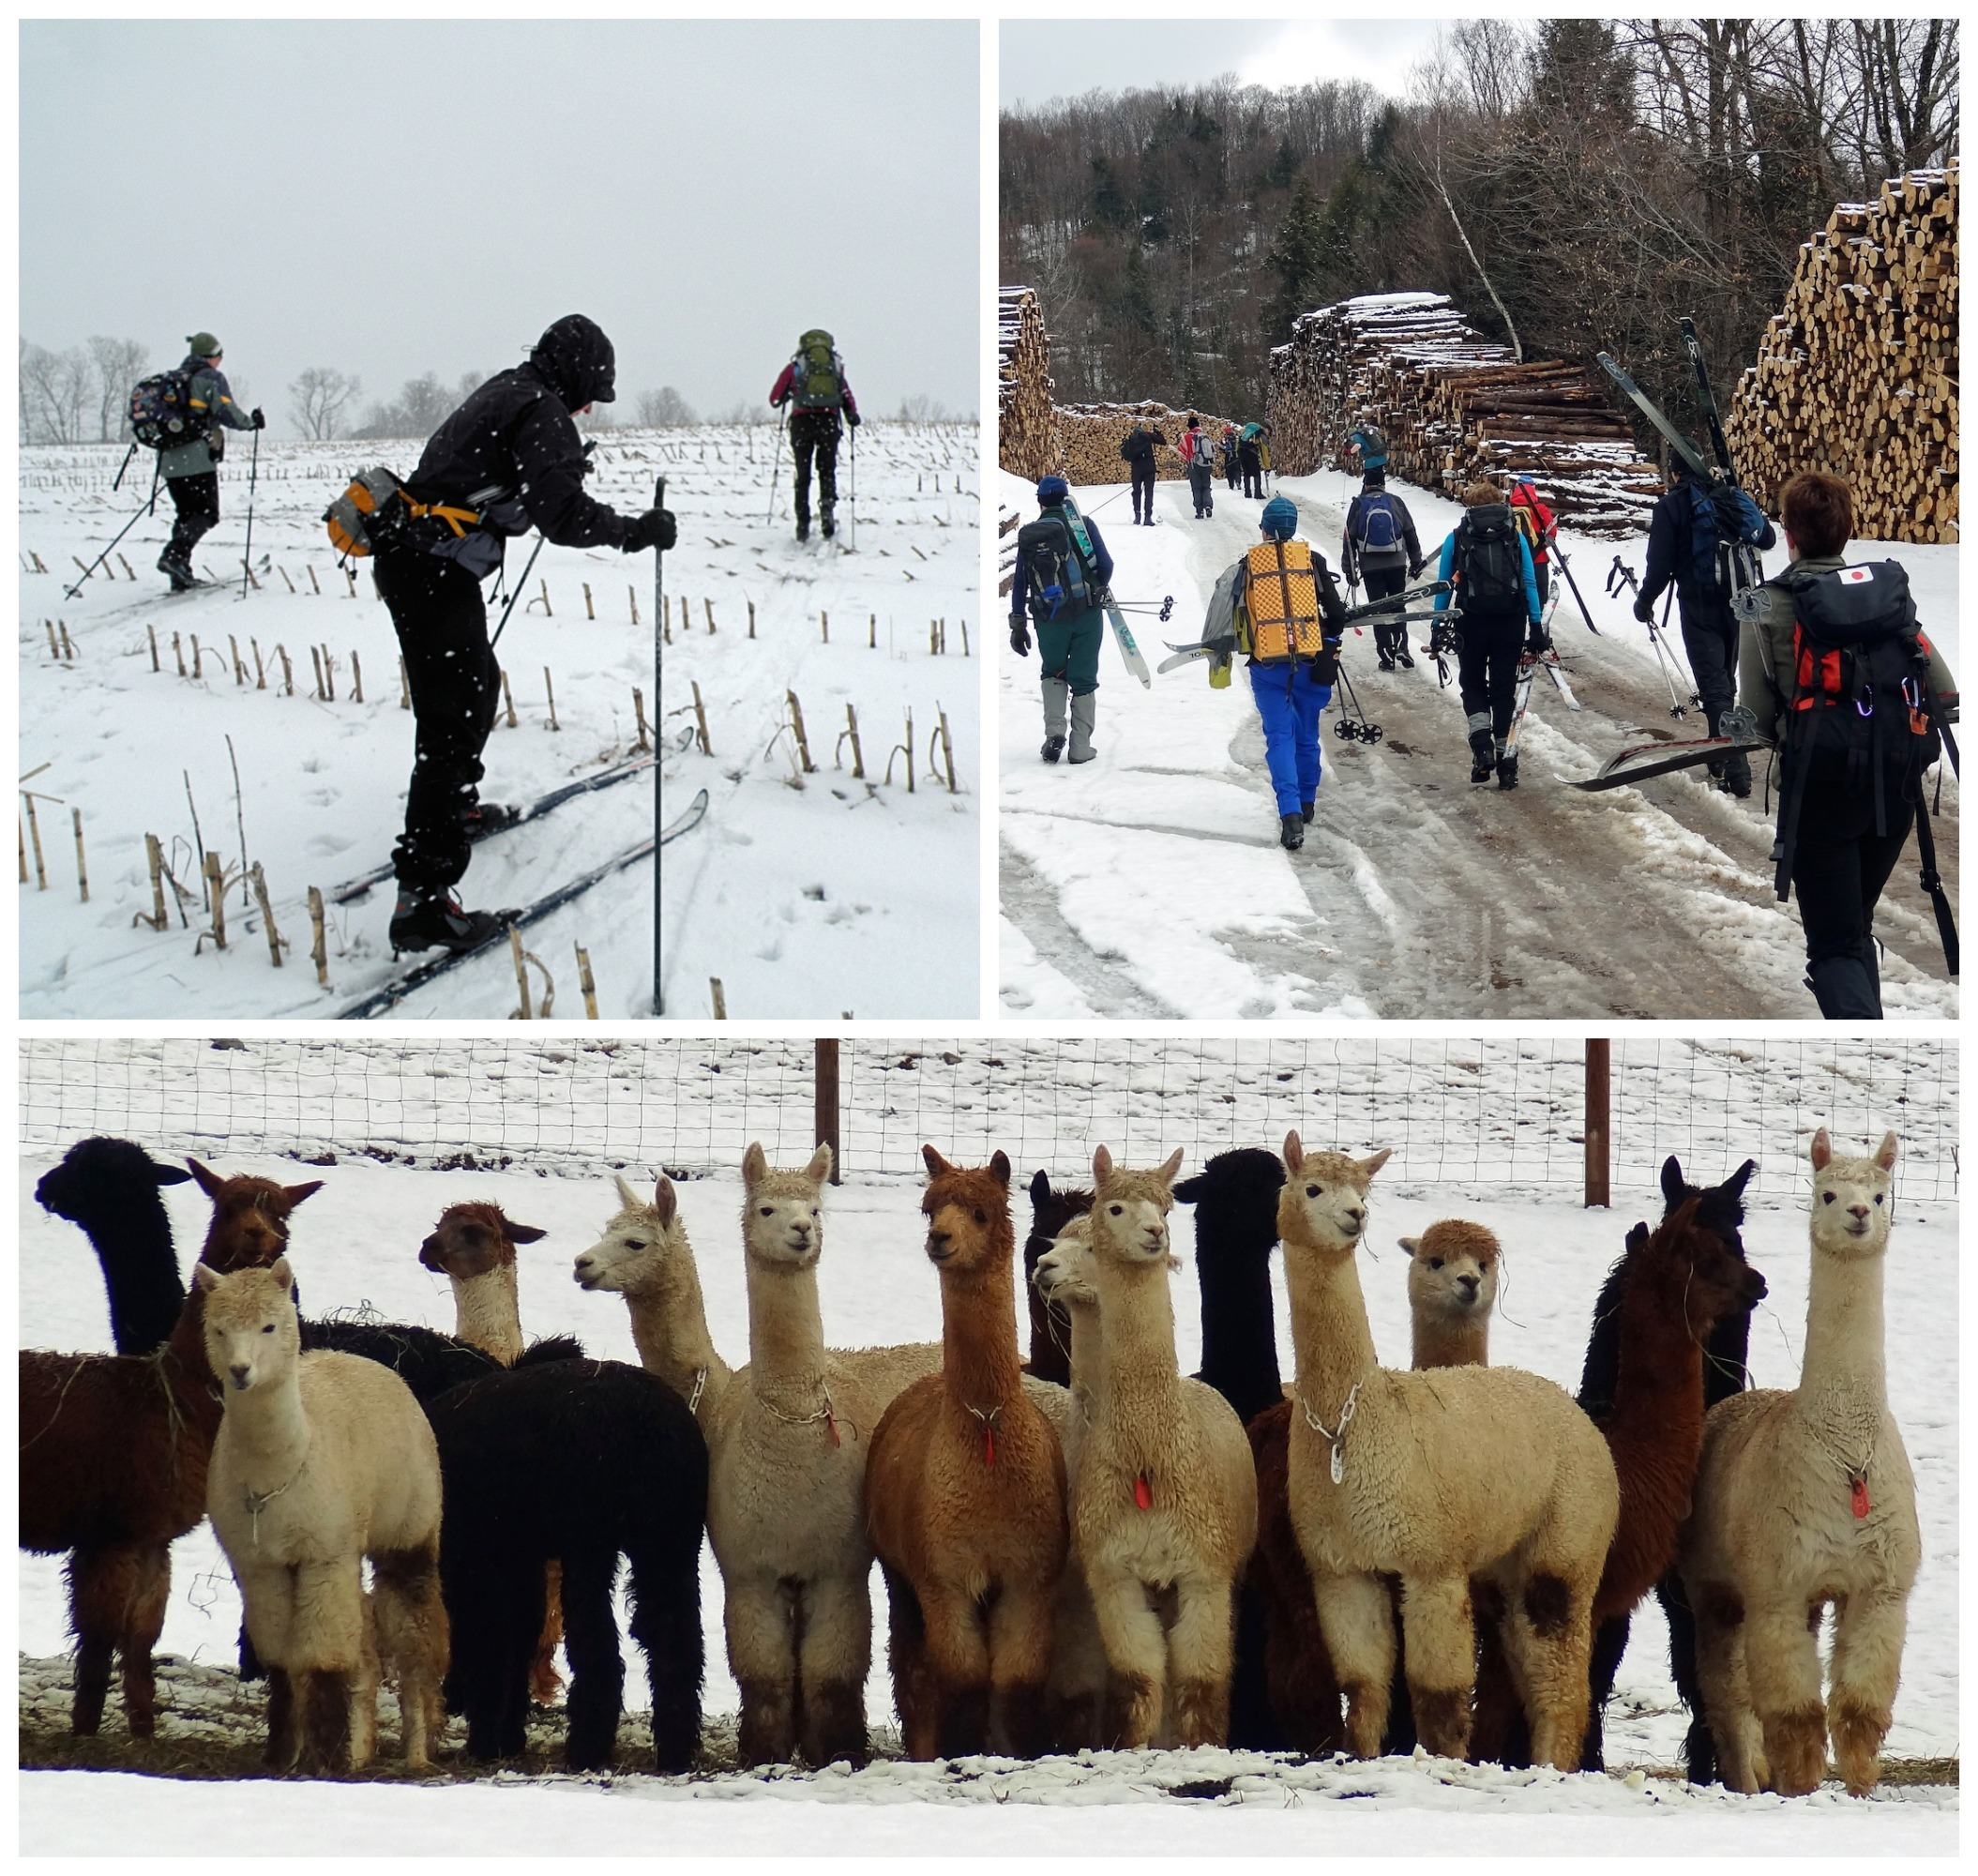 Llamas and People